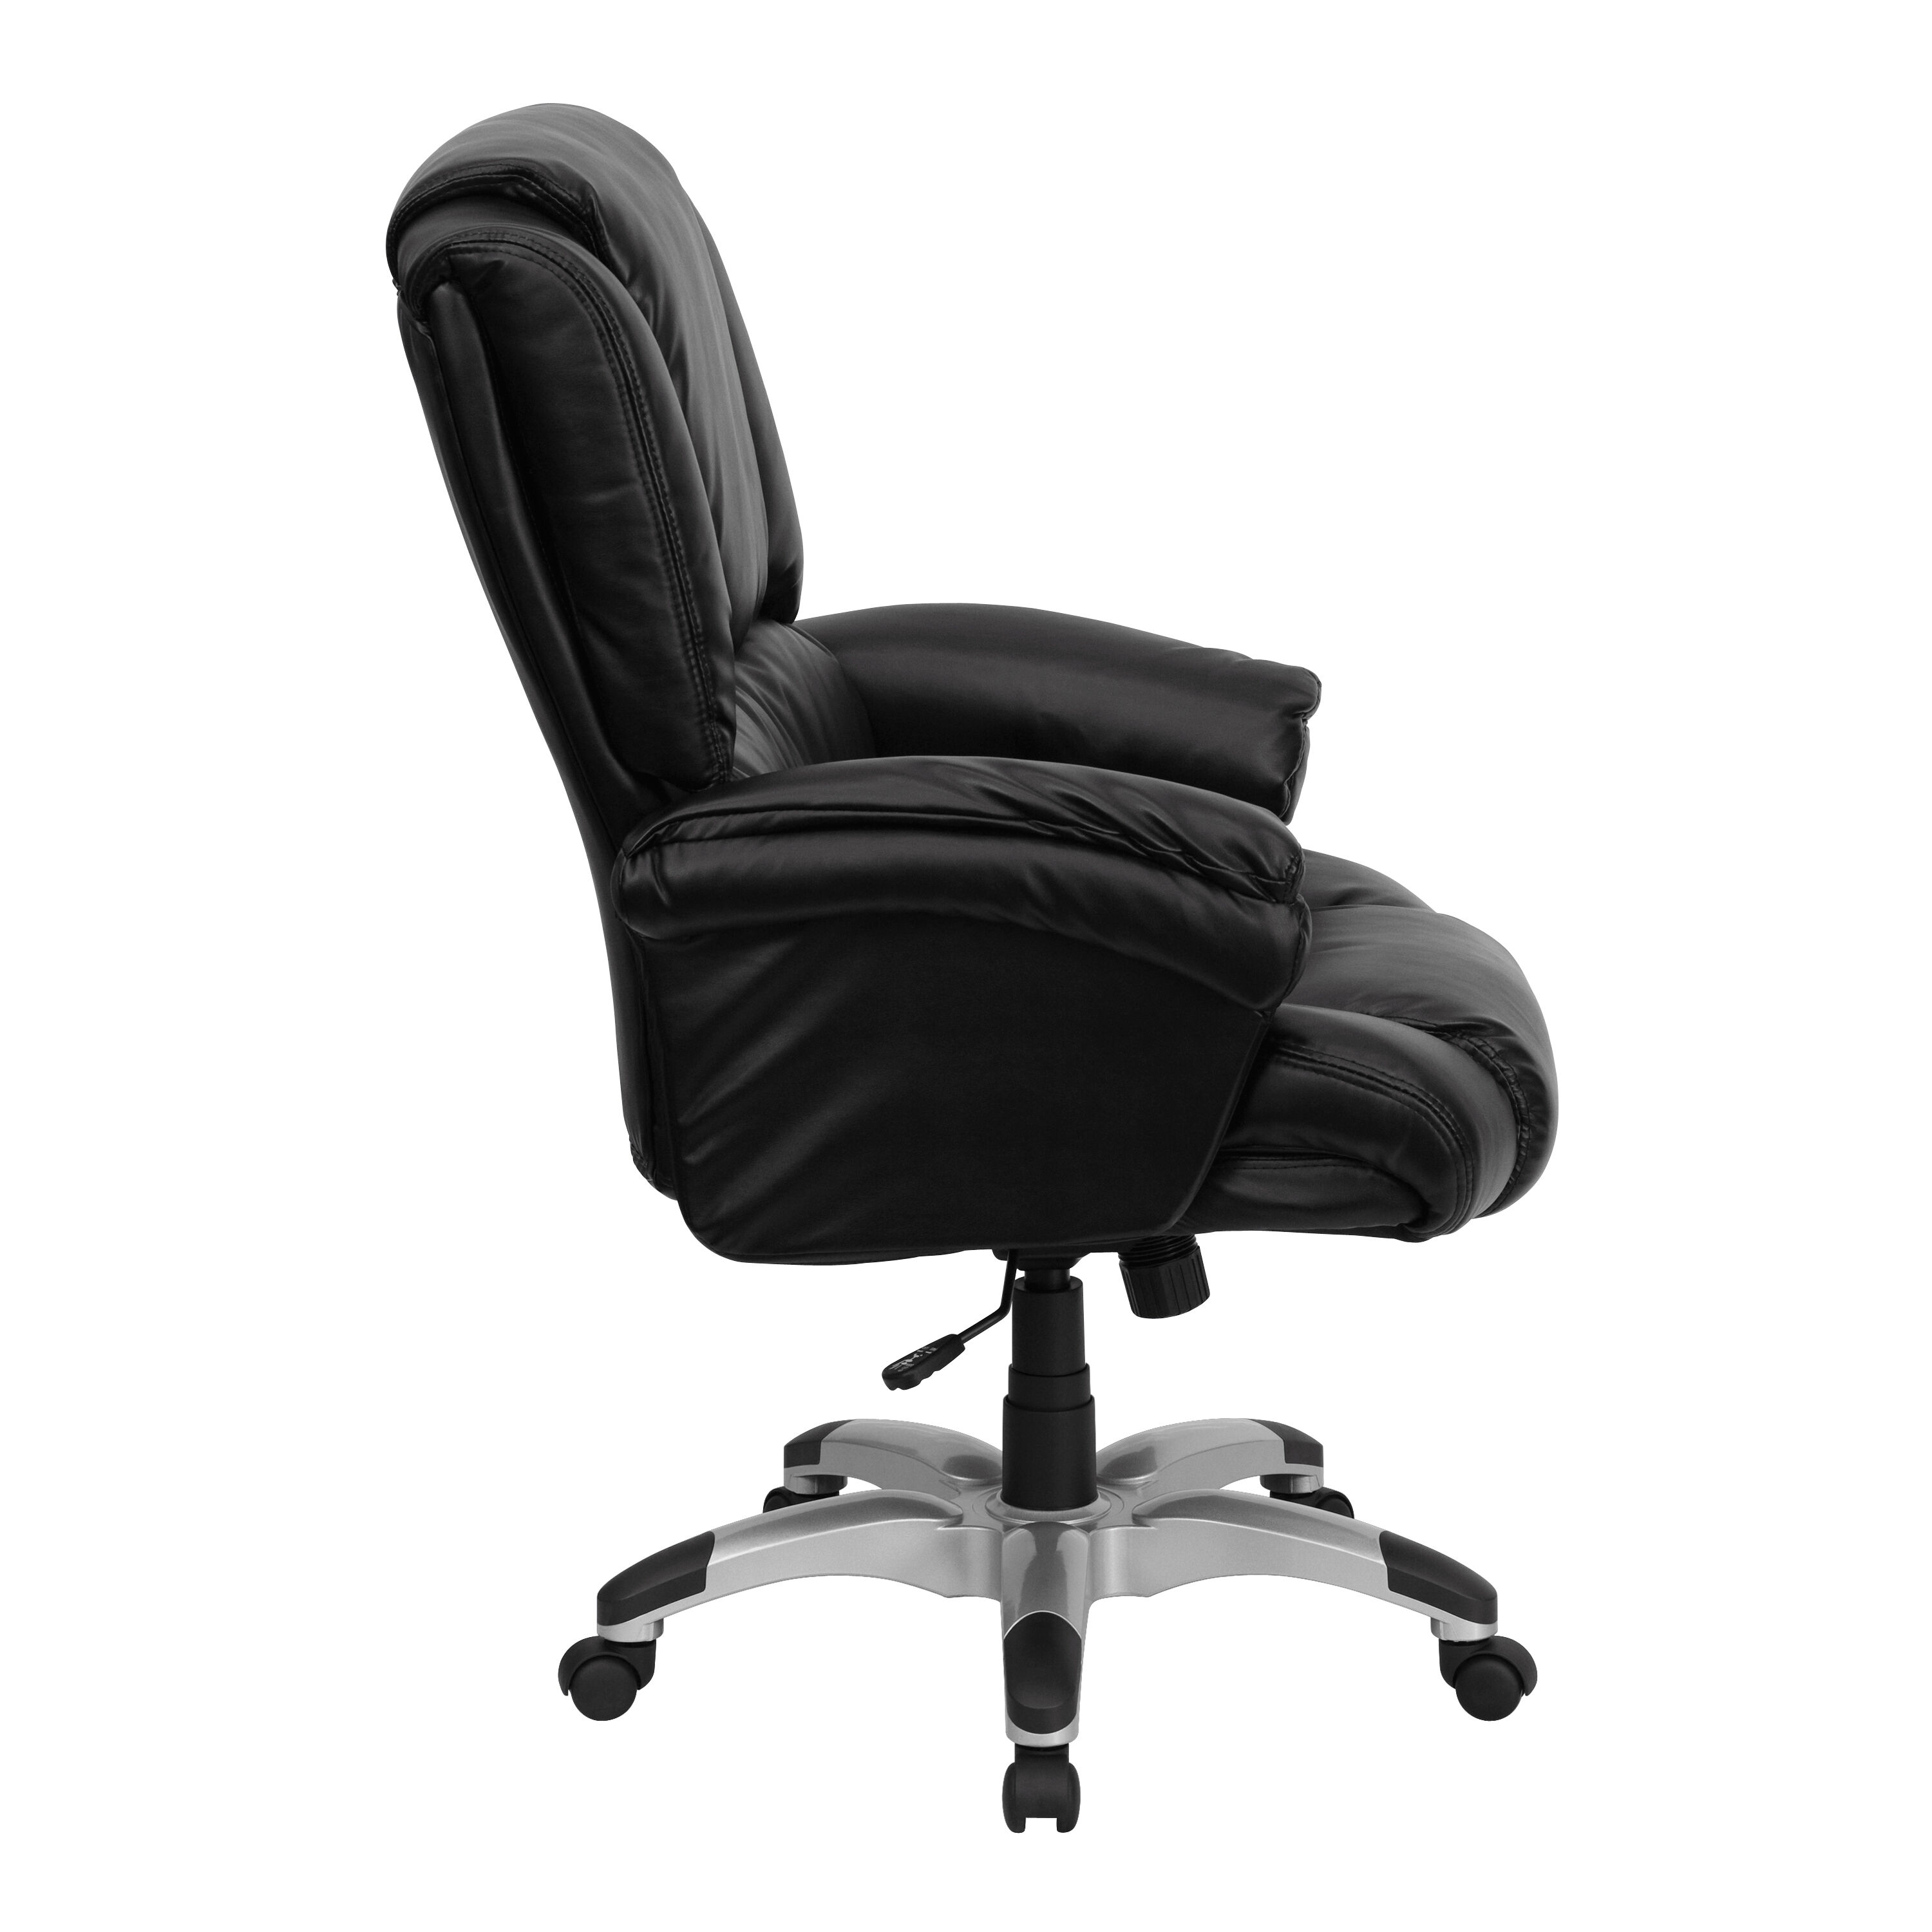 Superieur ... Our High Back Black Leather OverStuffed Executive Swivel Chair With  Fully Upholstered Arms Is On Sale ...